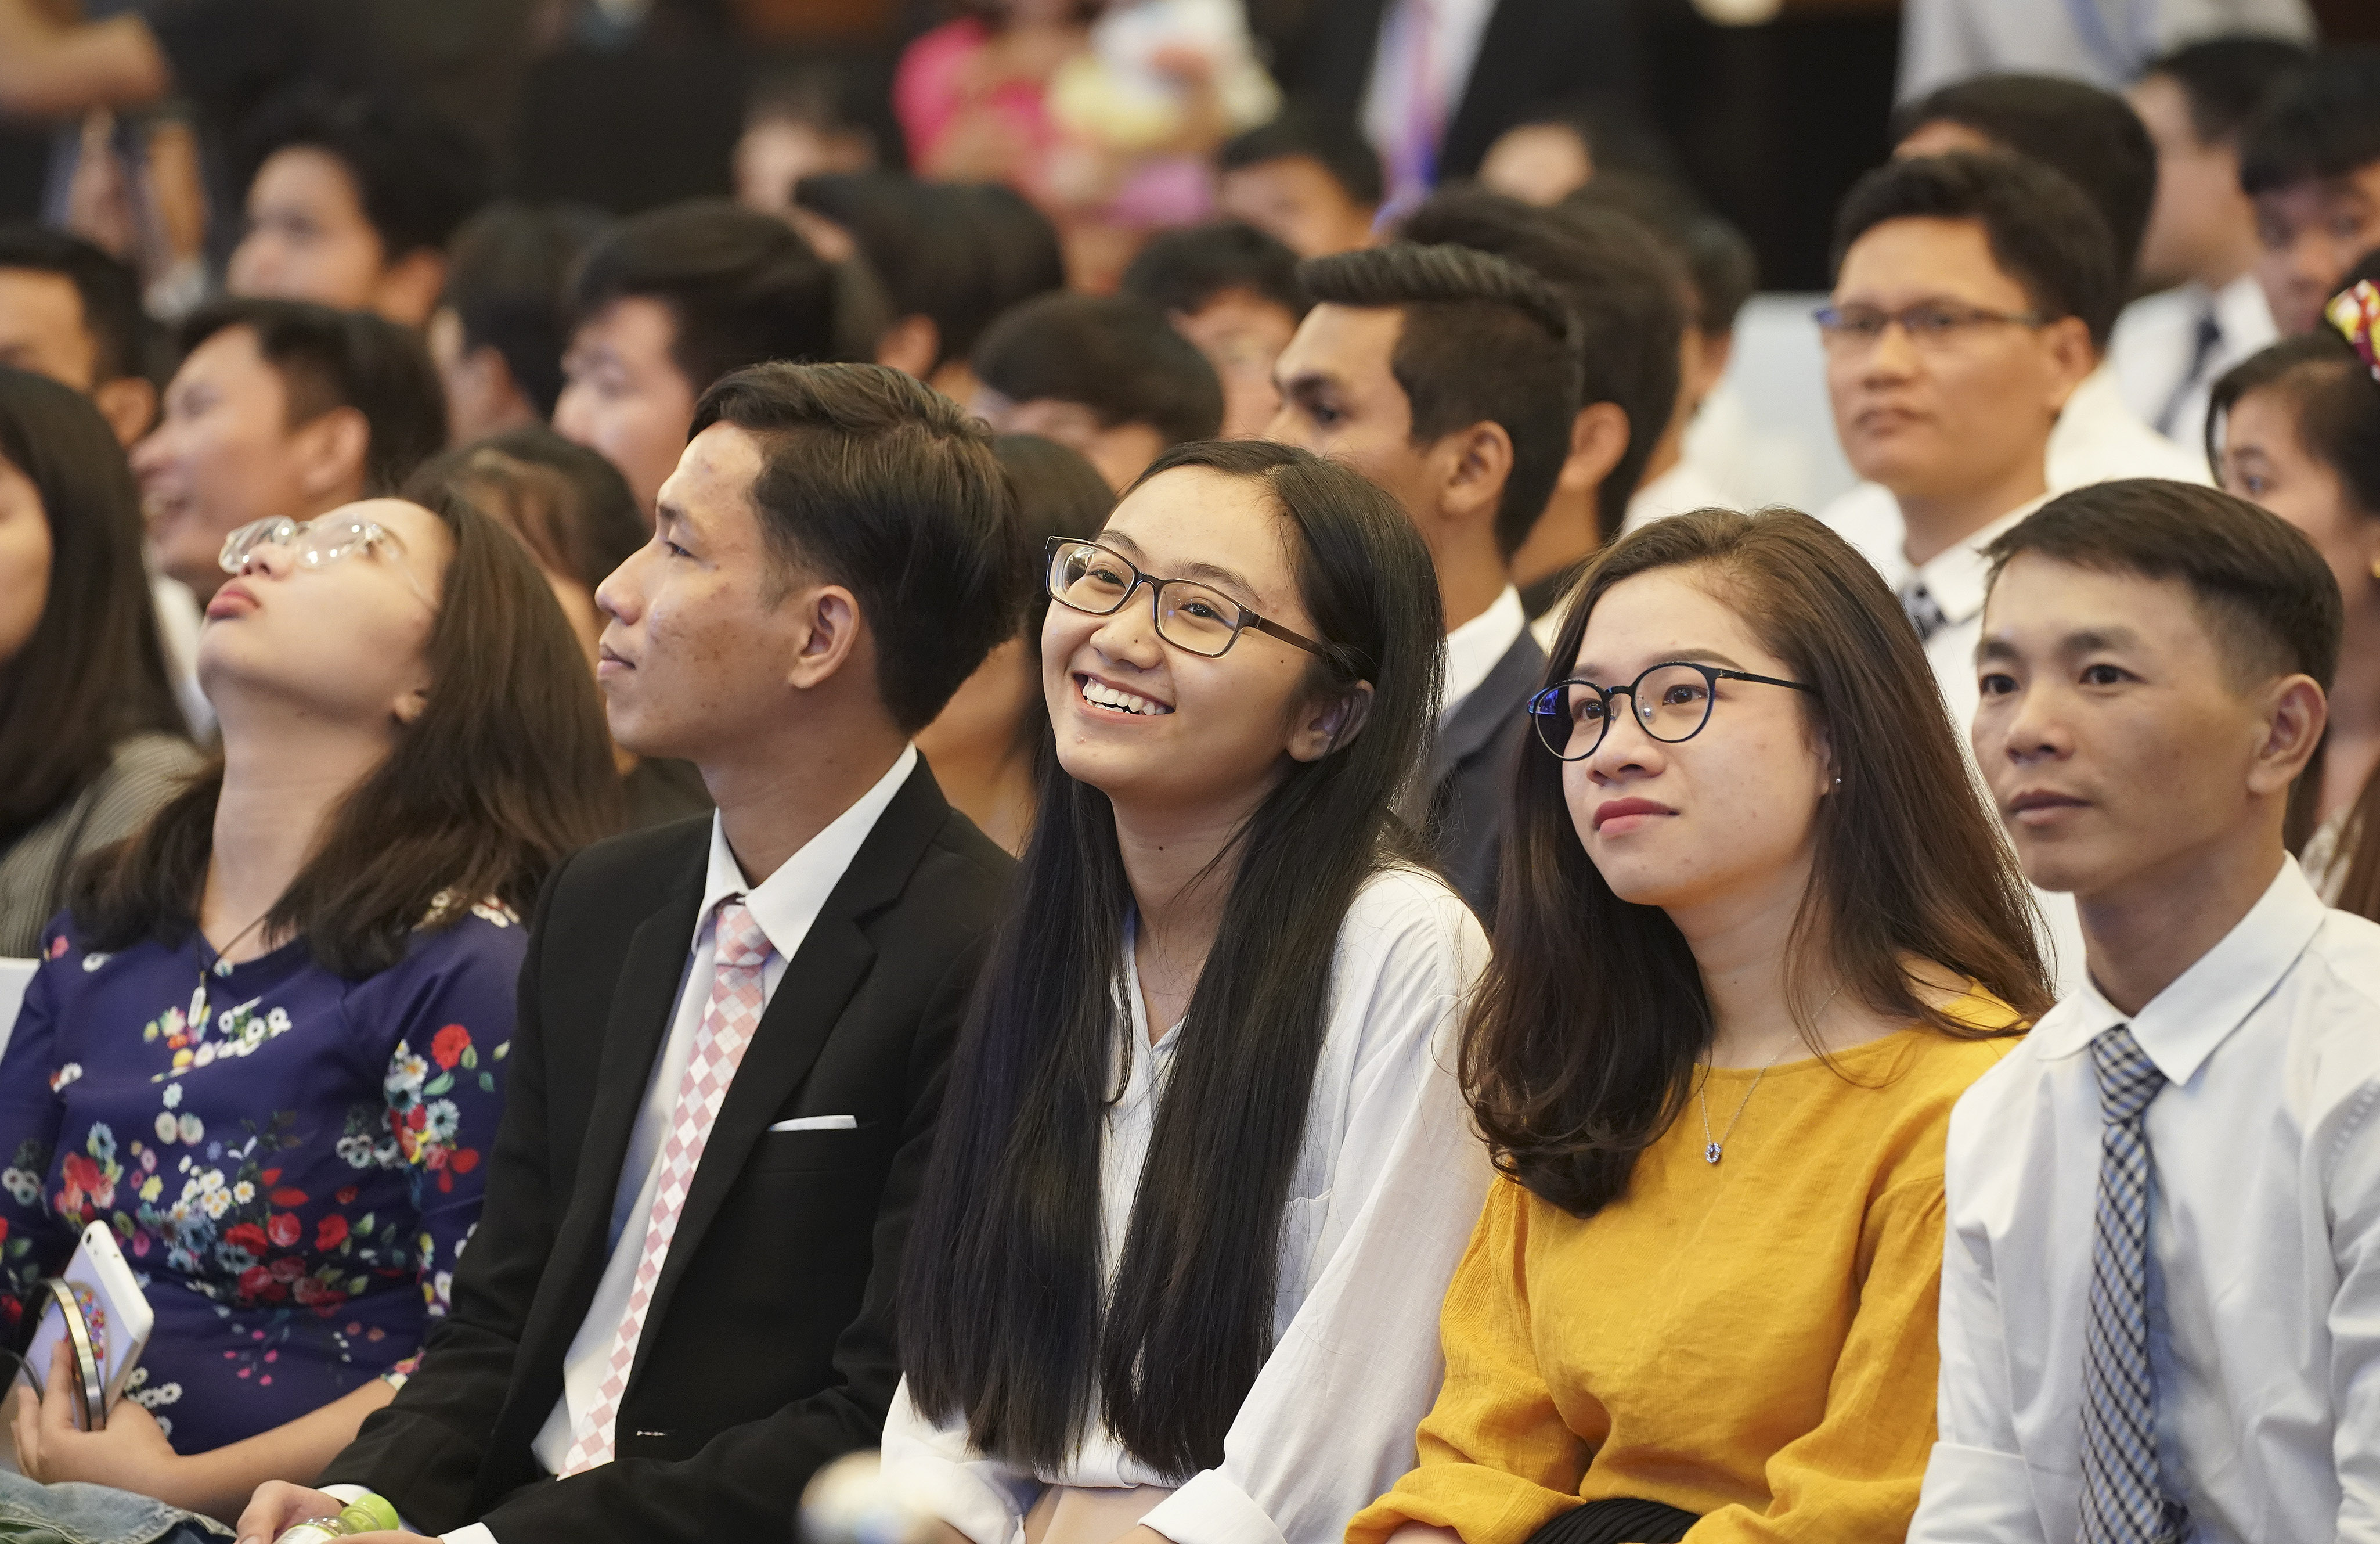 Attendees listen to President Russell M. Nelson of The Church of Jesus Christ of Latter-day Saints during a devotional in Ho Chi Minh City, Vietnam, on Nov. 18, 2019.